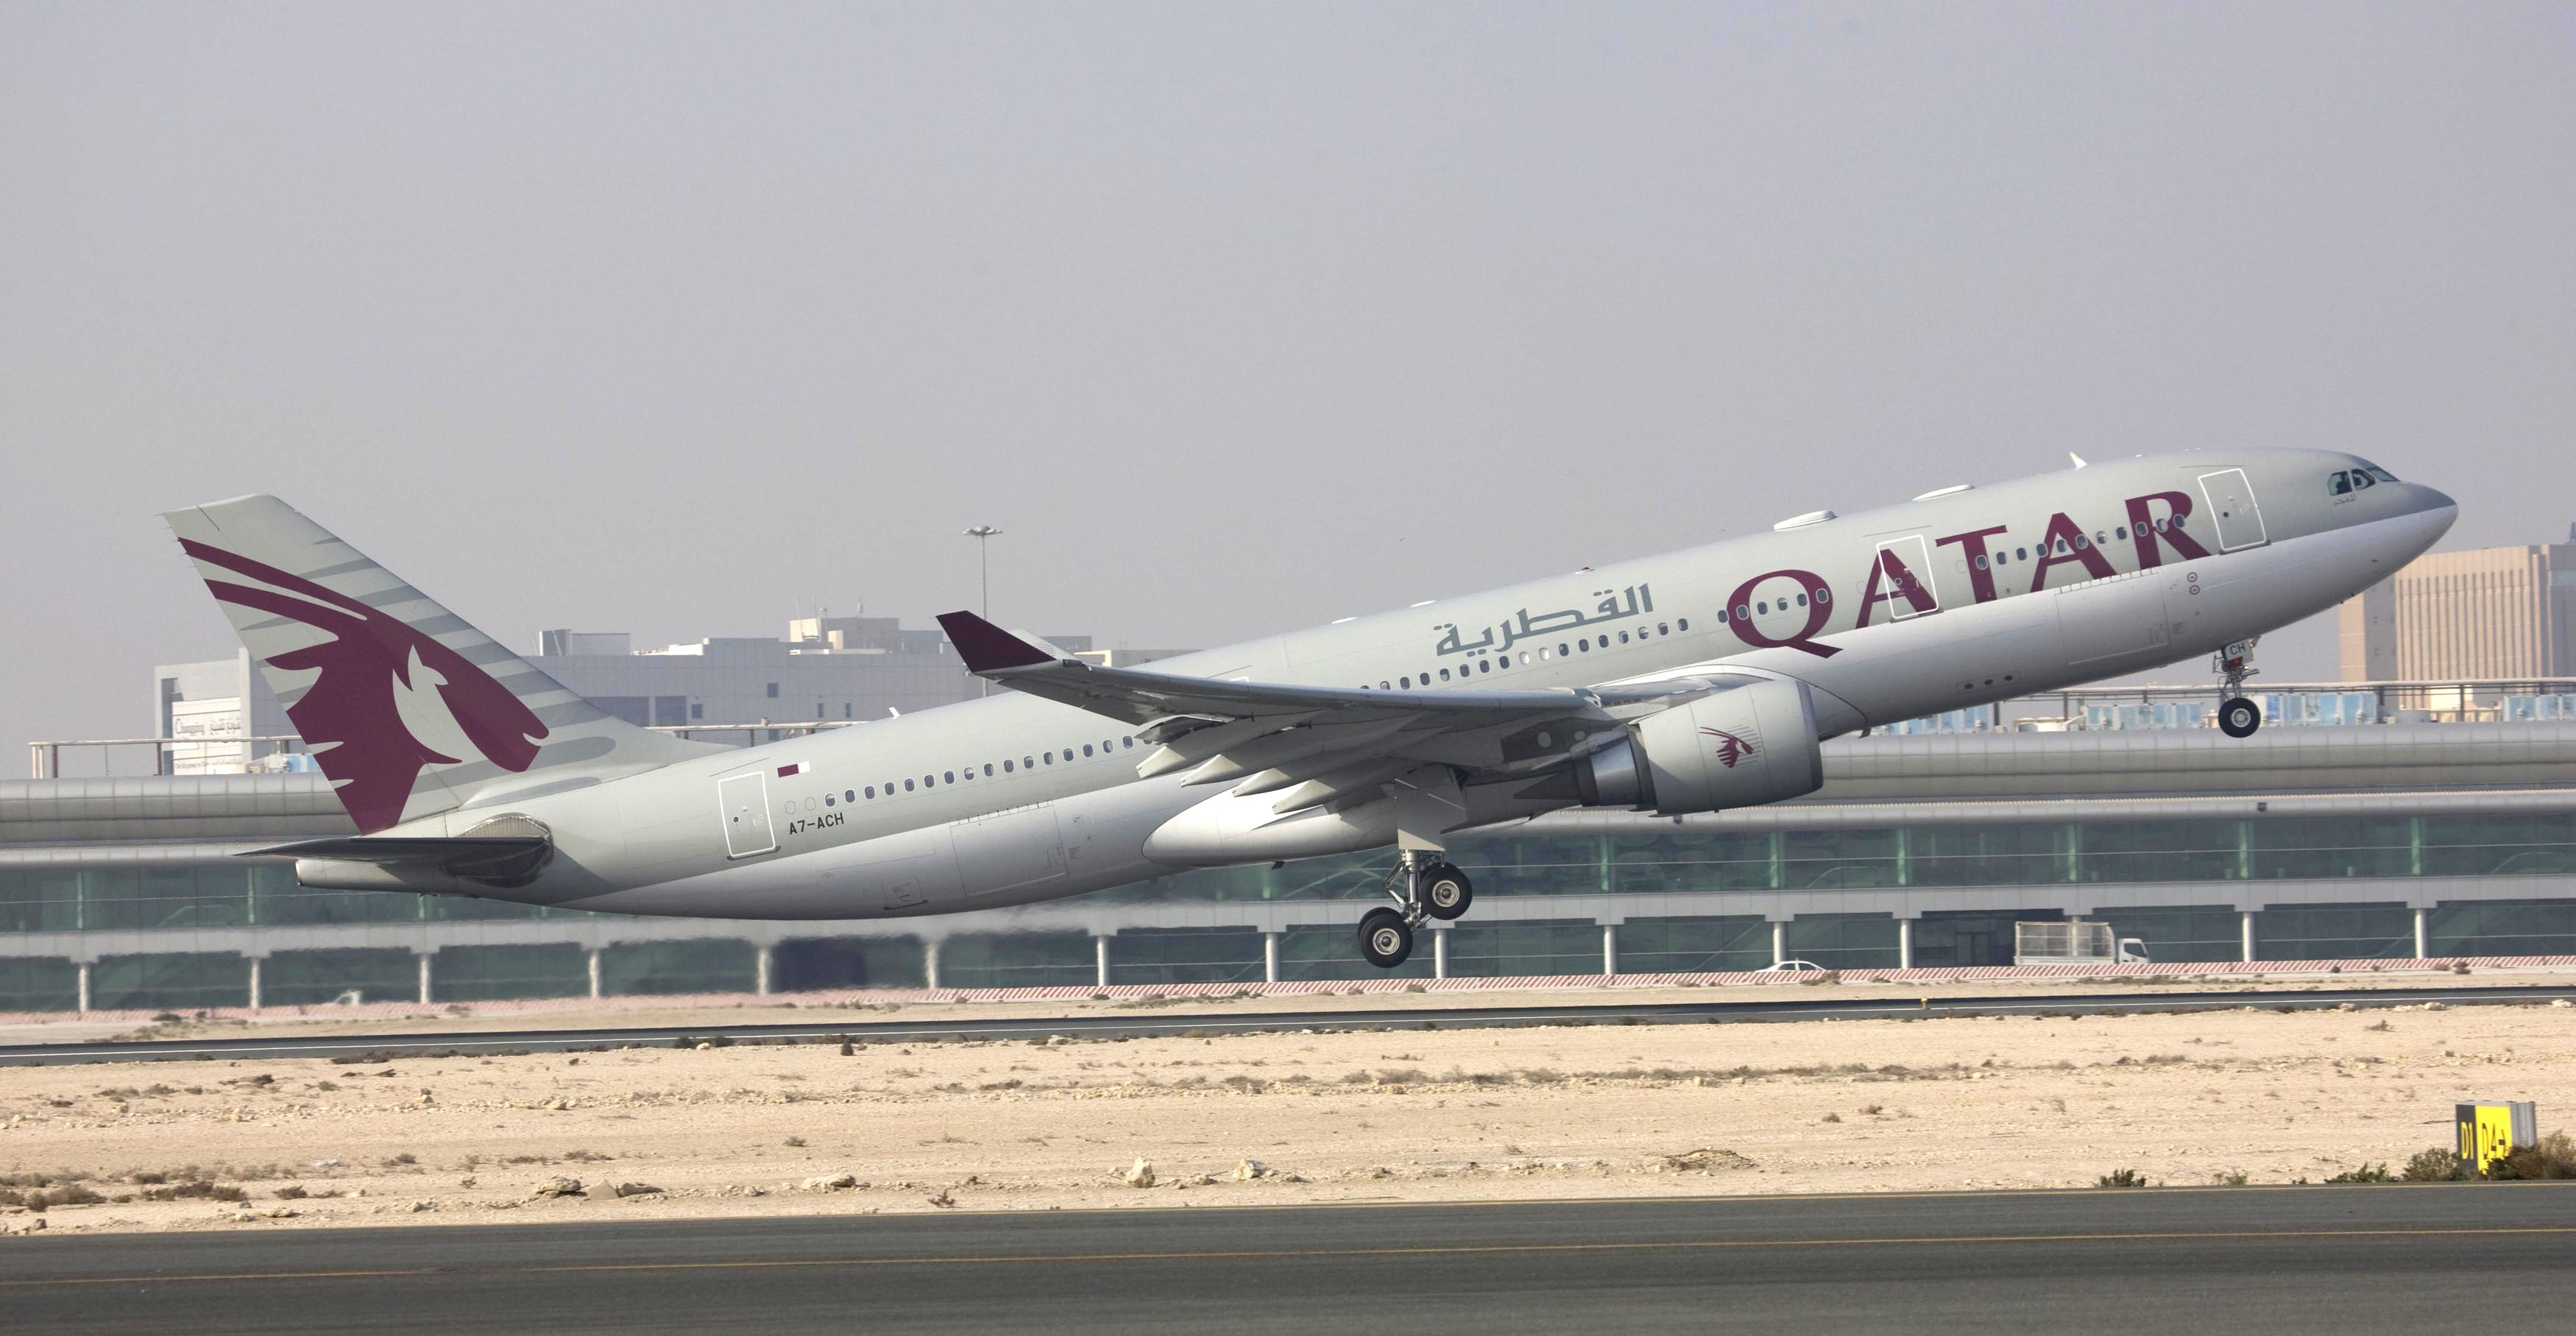 qatar-airways-airbus-a330-to-serve-chengdu_20121206183813_82.jpg